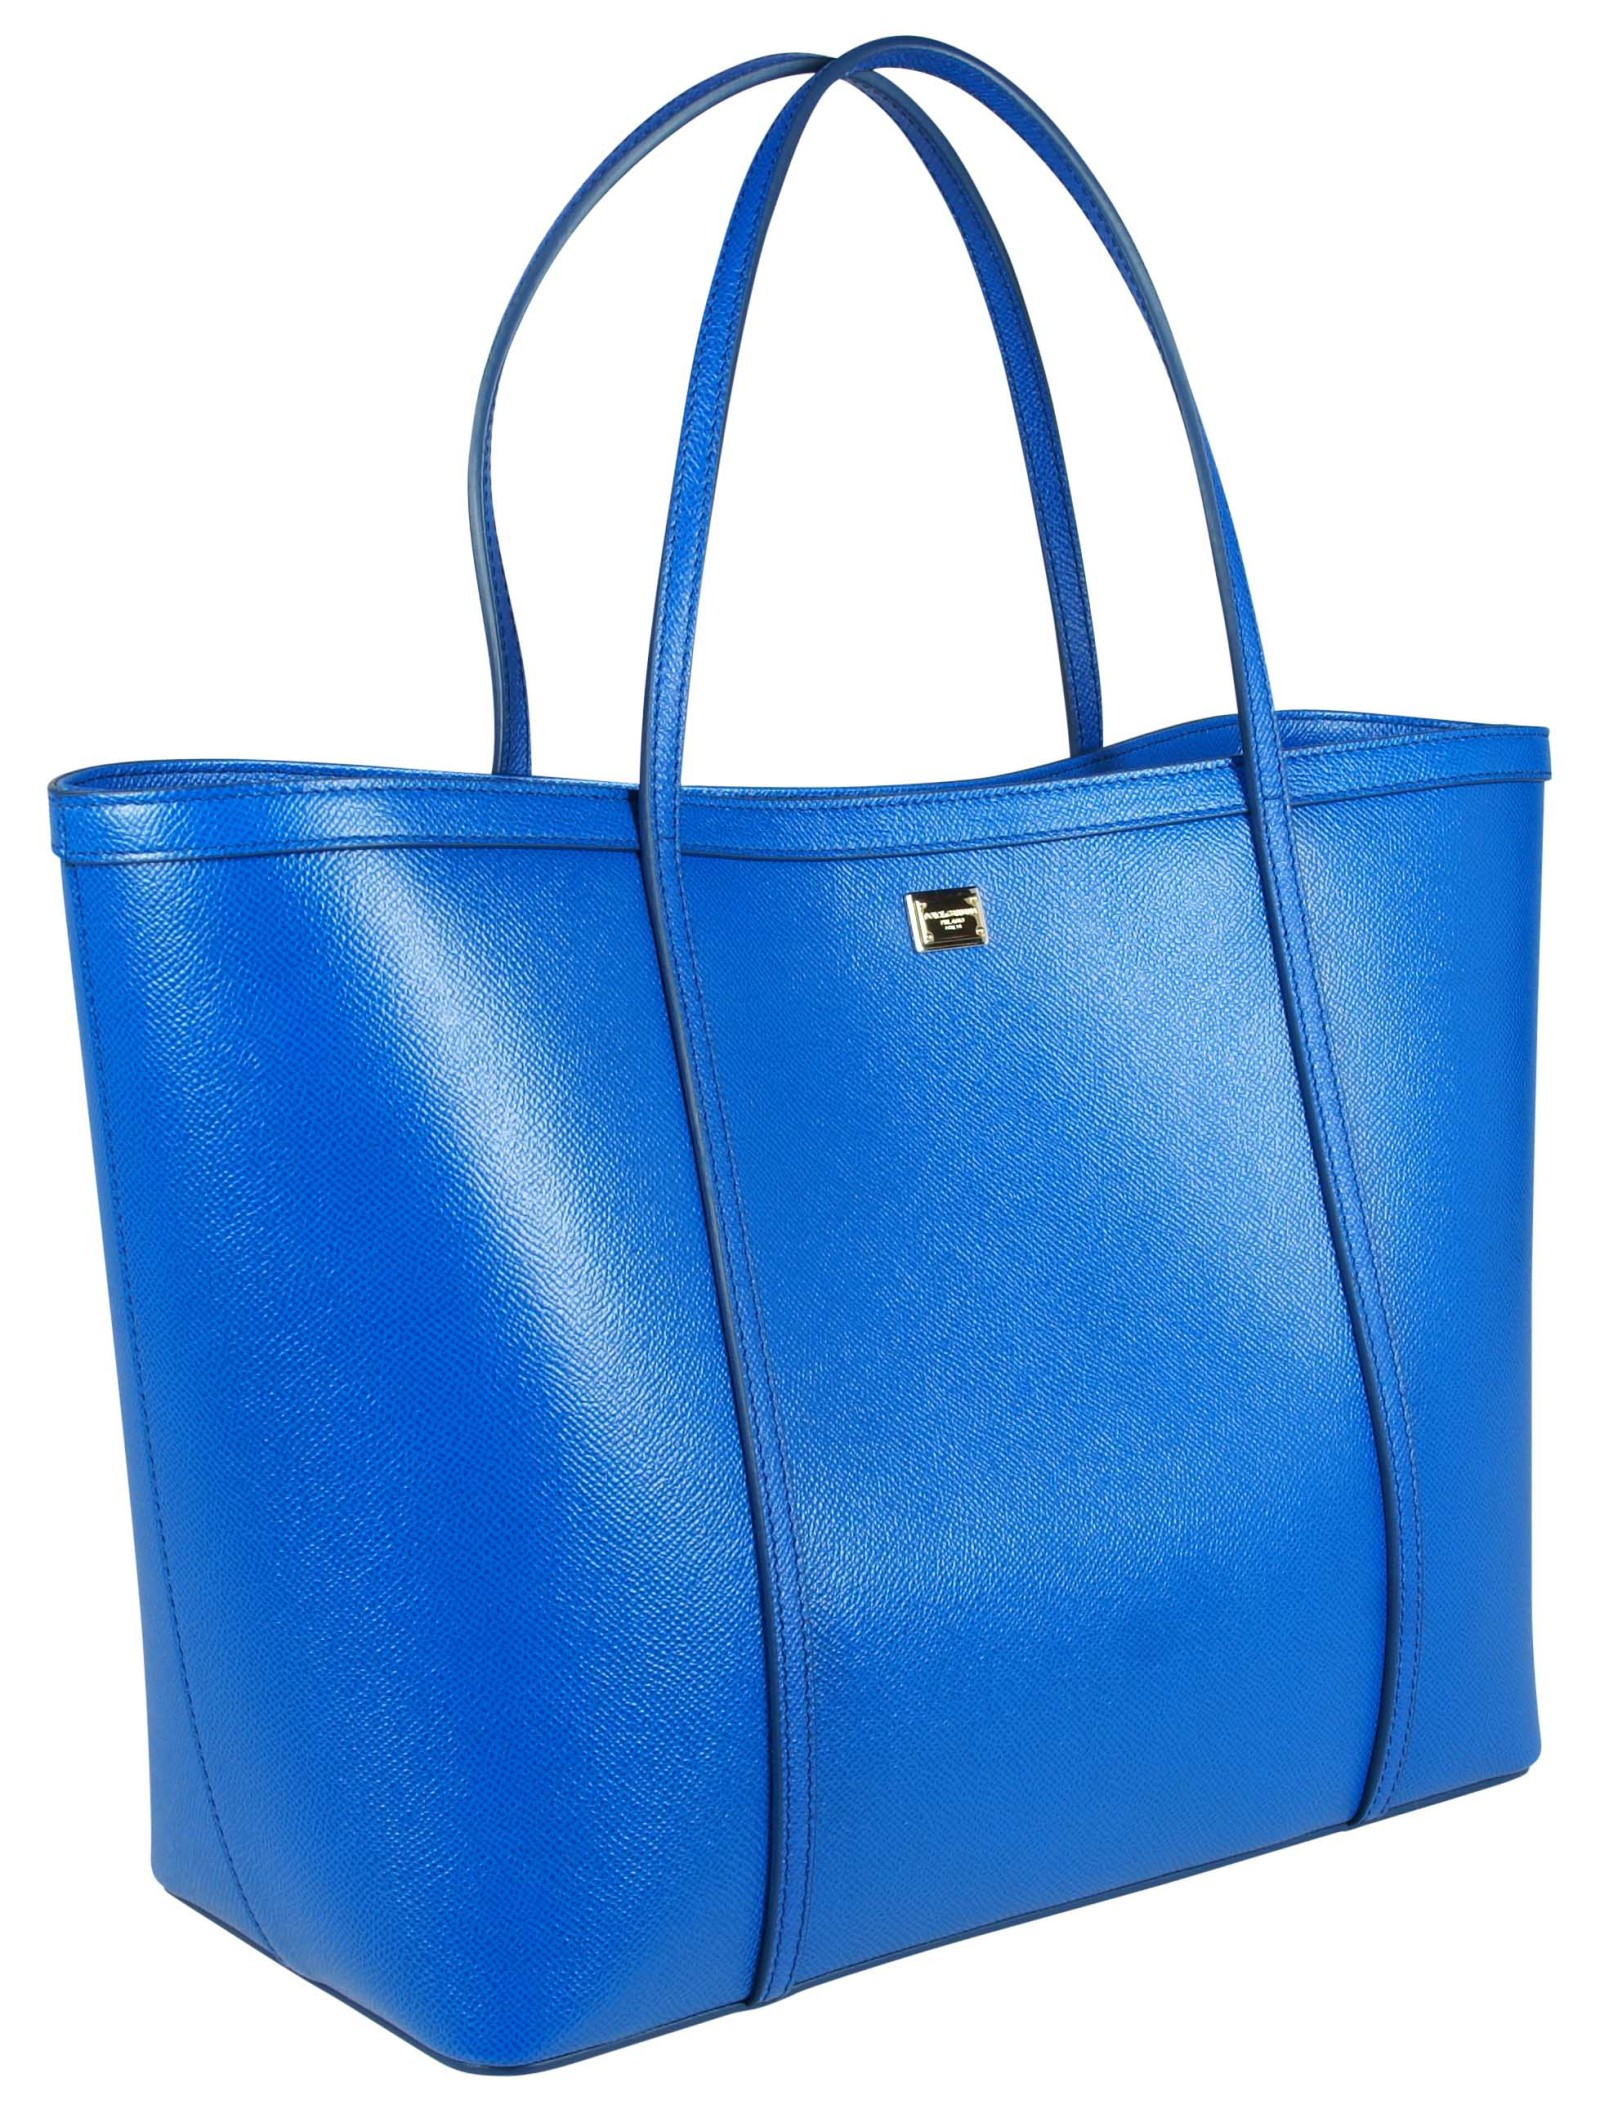 Dolce \u0026amp; gabbana Borsa Donna Blu Royal in Blue | Lyst